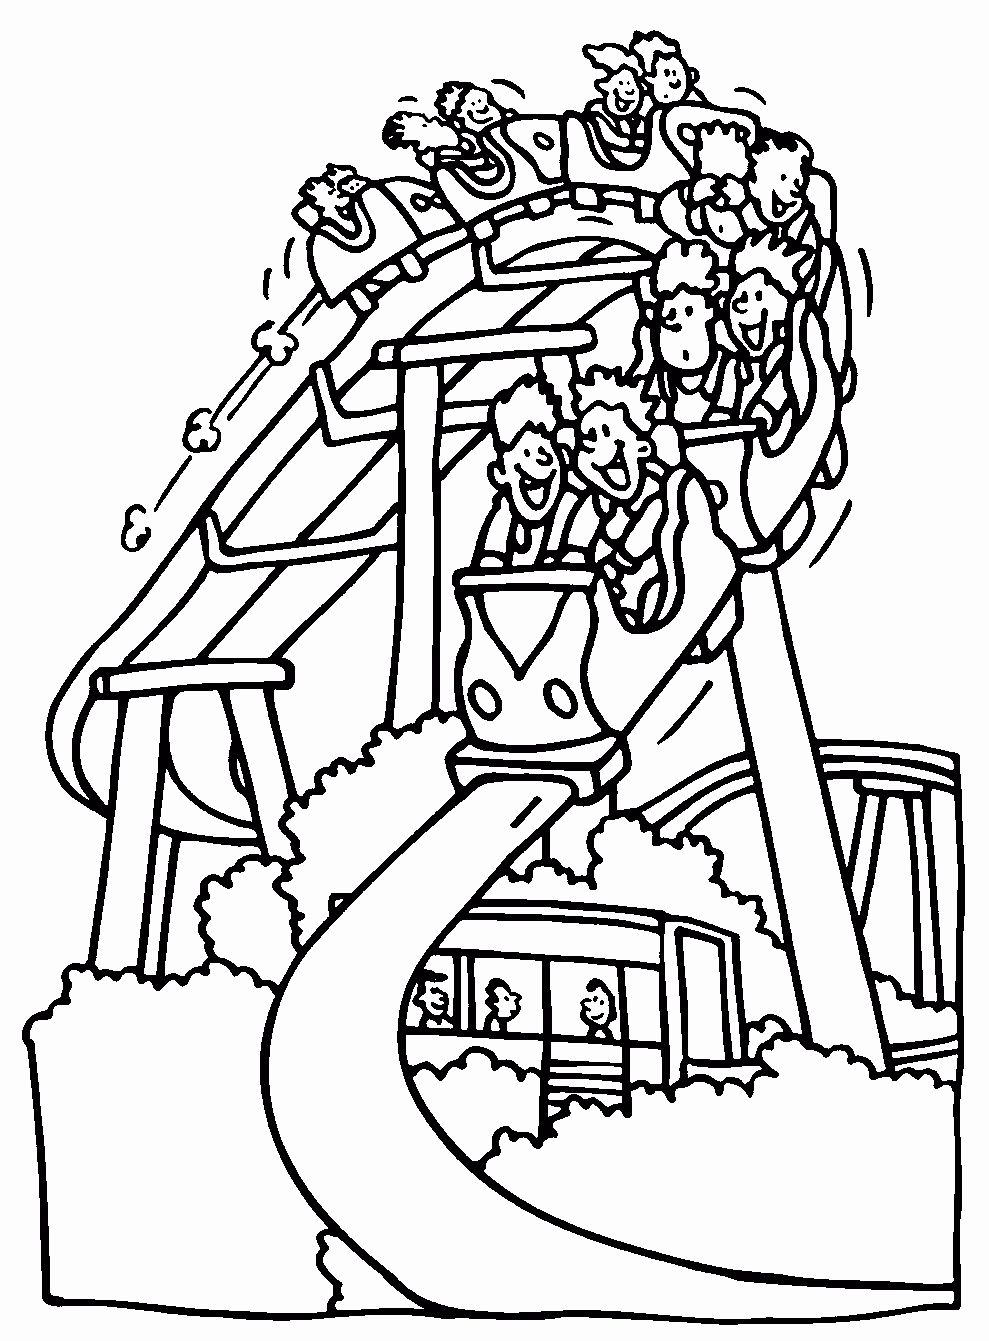 Roller Coaster Coloring Page Awesome Park Coloring Page Coloring Home Coloring Pages Summer Coloring Pages Coaster Art